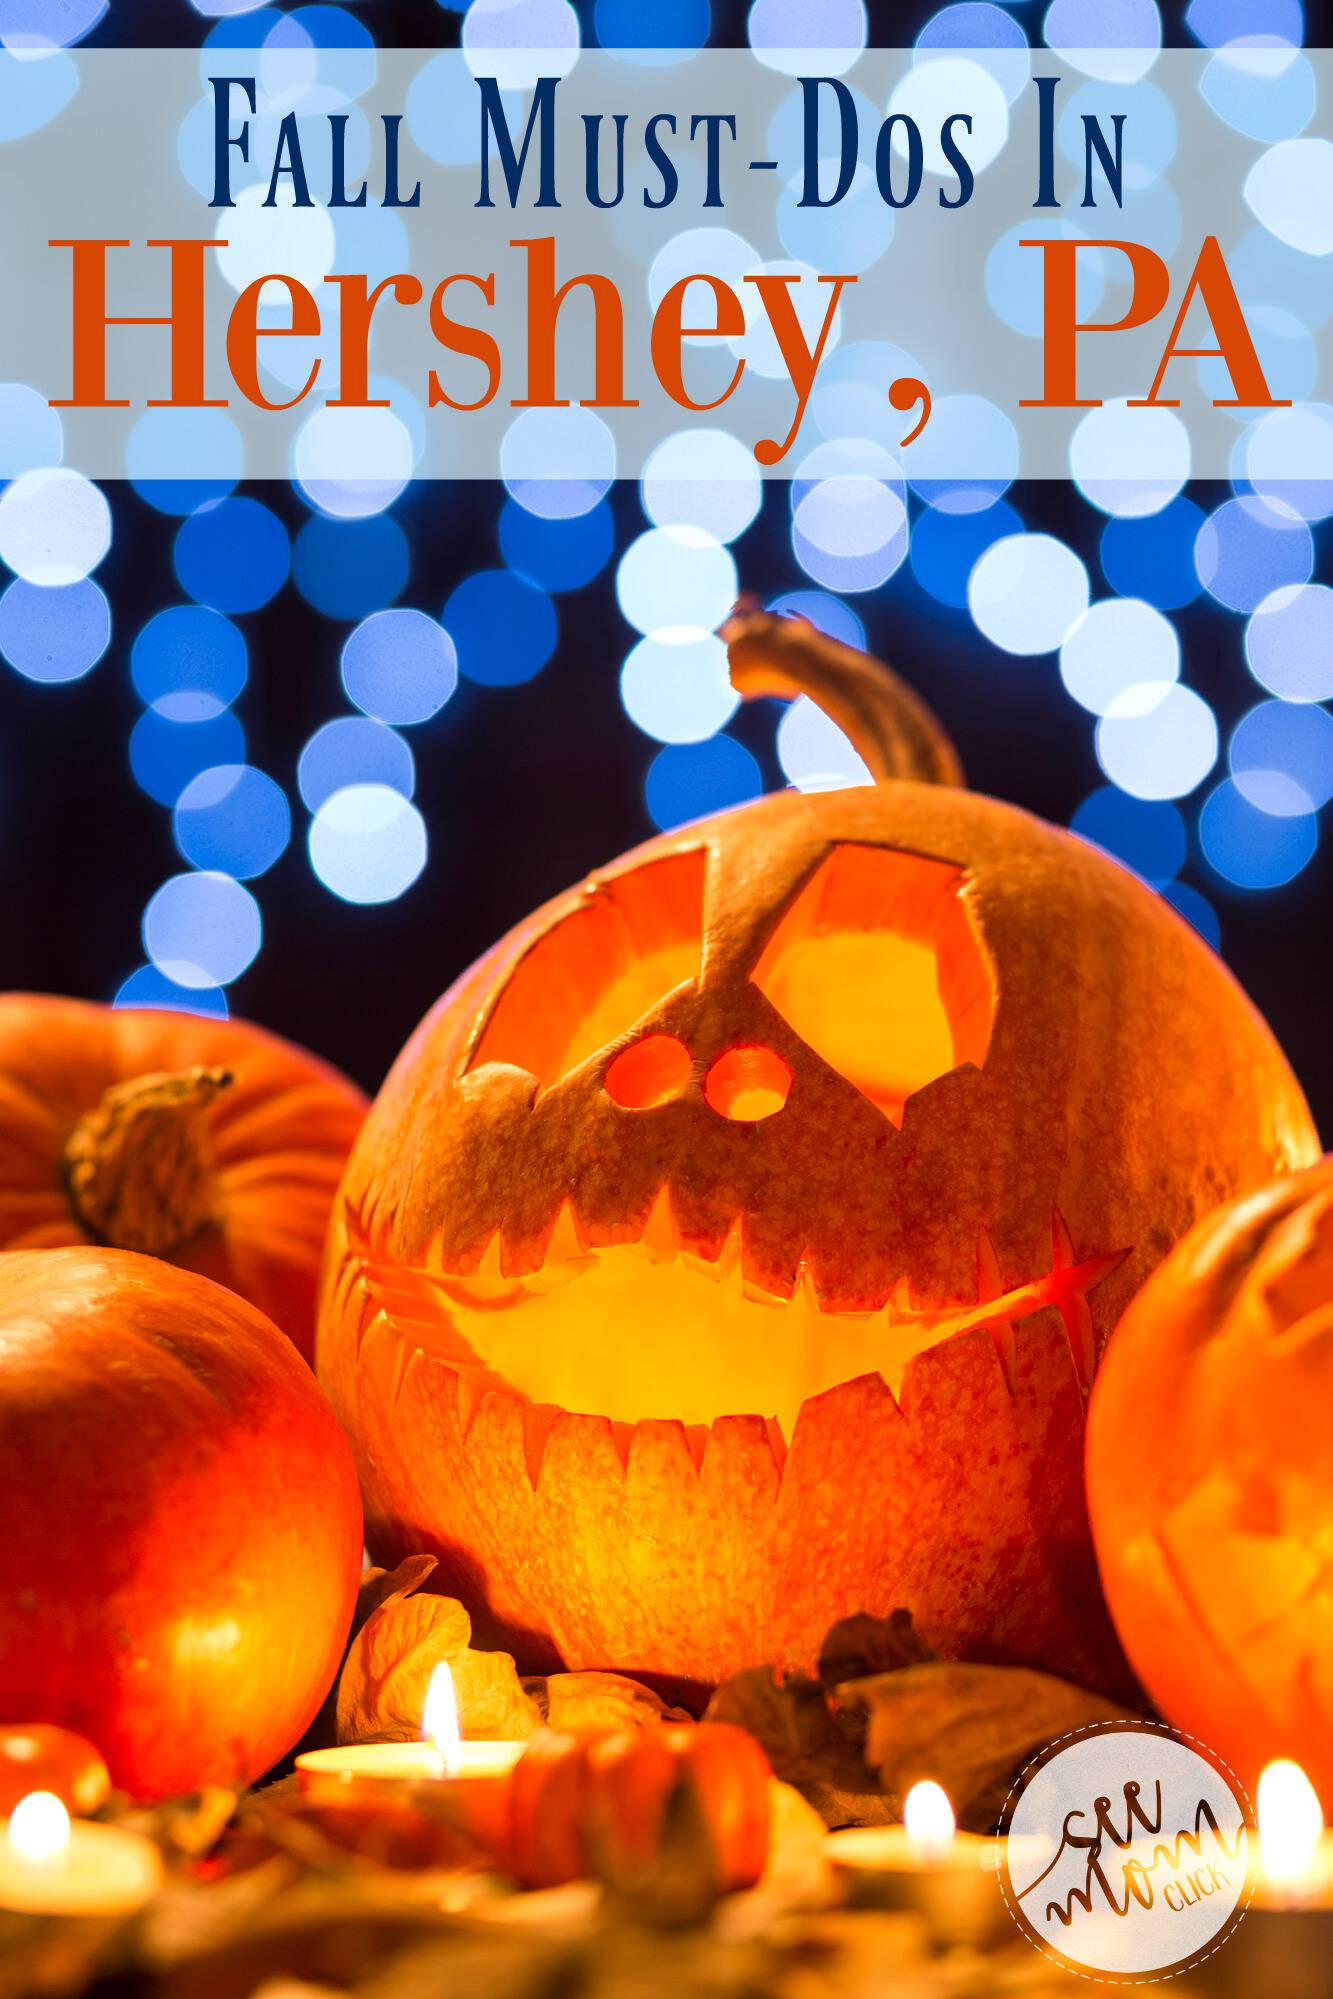 There's so much to do in The Sweetest Place on Earth this fall. Here's the complete list of must-dos in Hershey, PA, our favorite family travel destination.